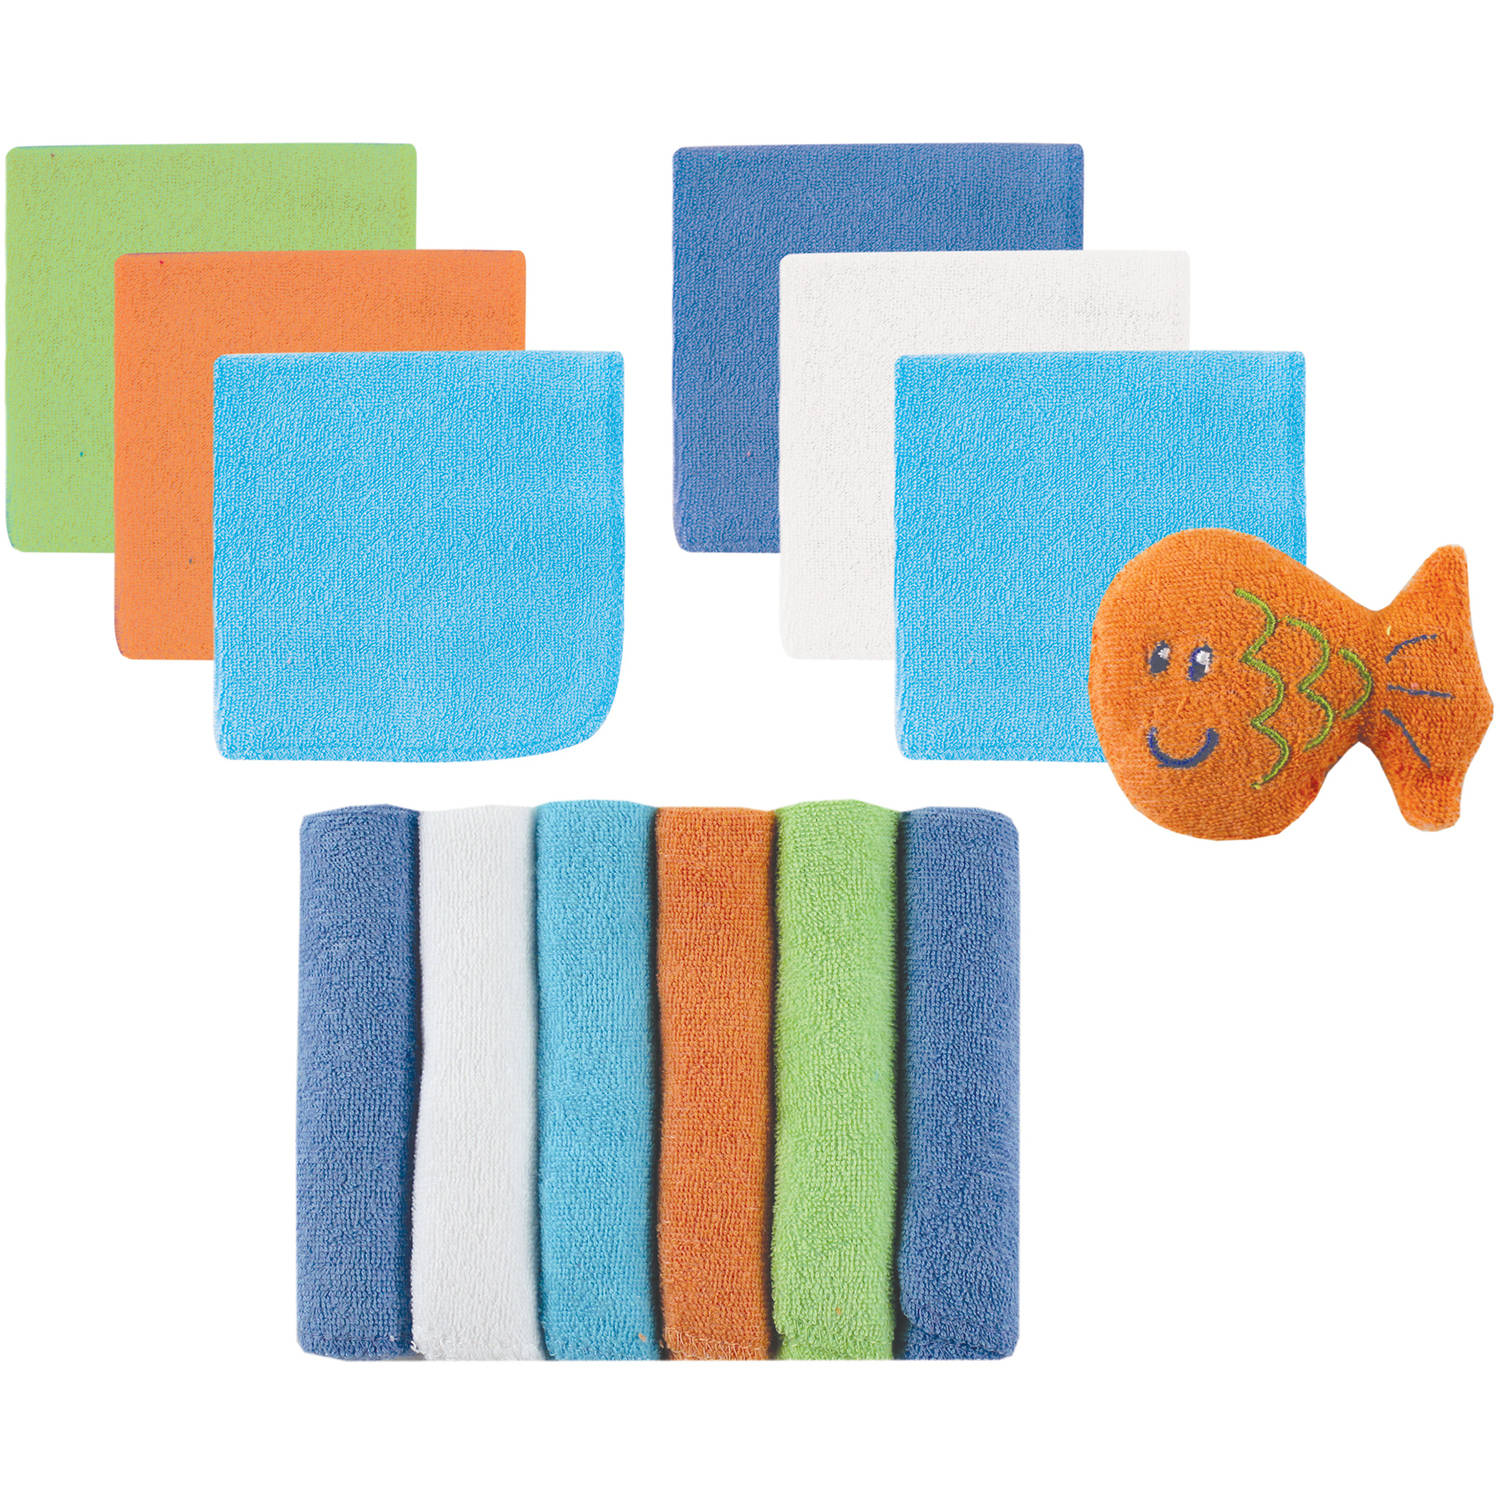 Luvable Friends Washcloths, 12pk, Bonus Bath Toy, Multiple Colors